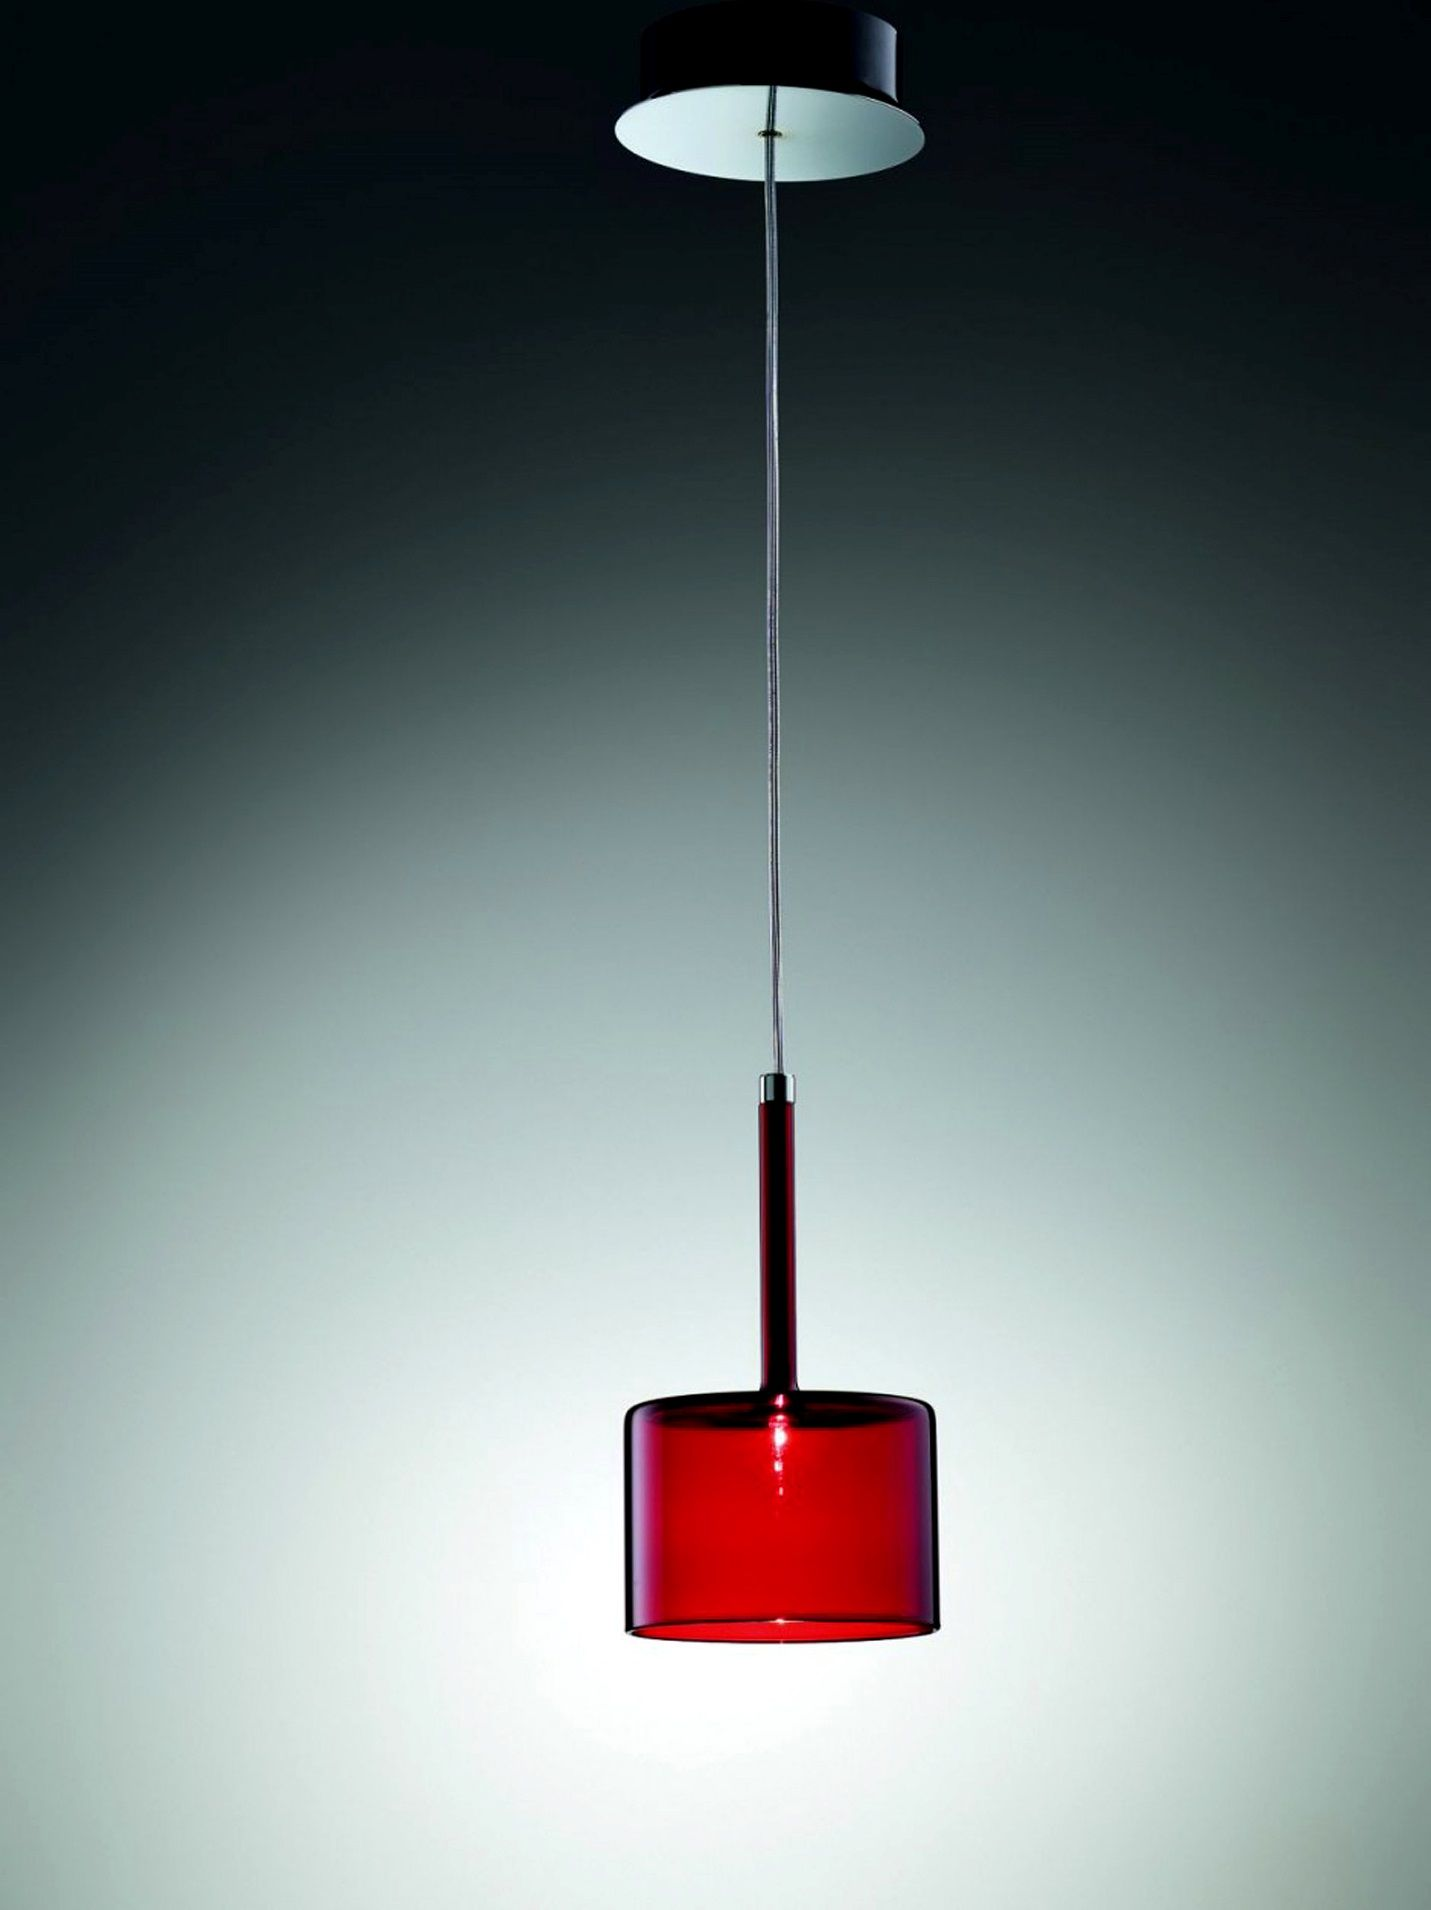 Jazz Up Your Home With These Sassy Pendant Lights Glass Pendant Lamp Cool Hanging Lights Pendant Lamp